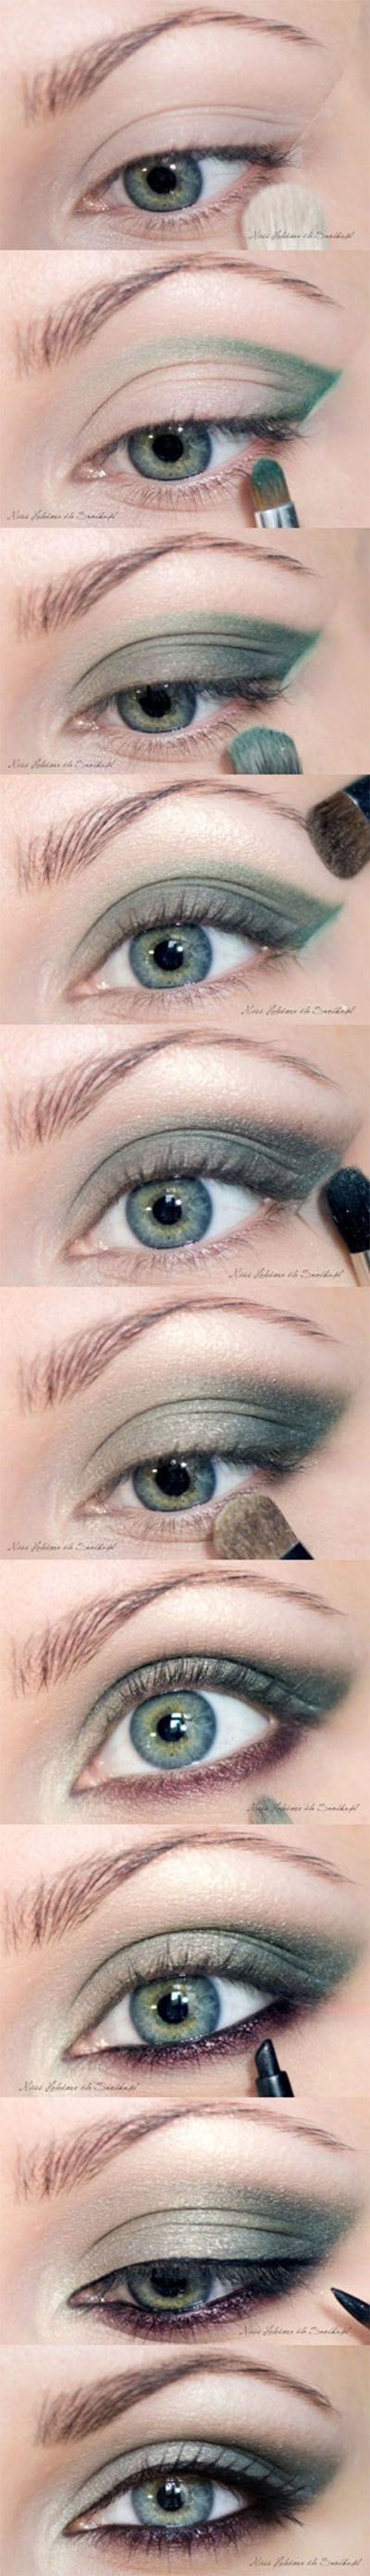 Easy-Step-By-Step-Winter-Make-Up-Tutorials-For-Beginners-Learners-2015-5